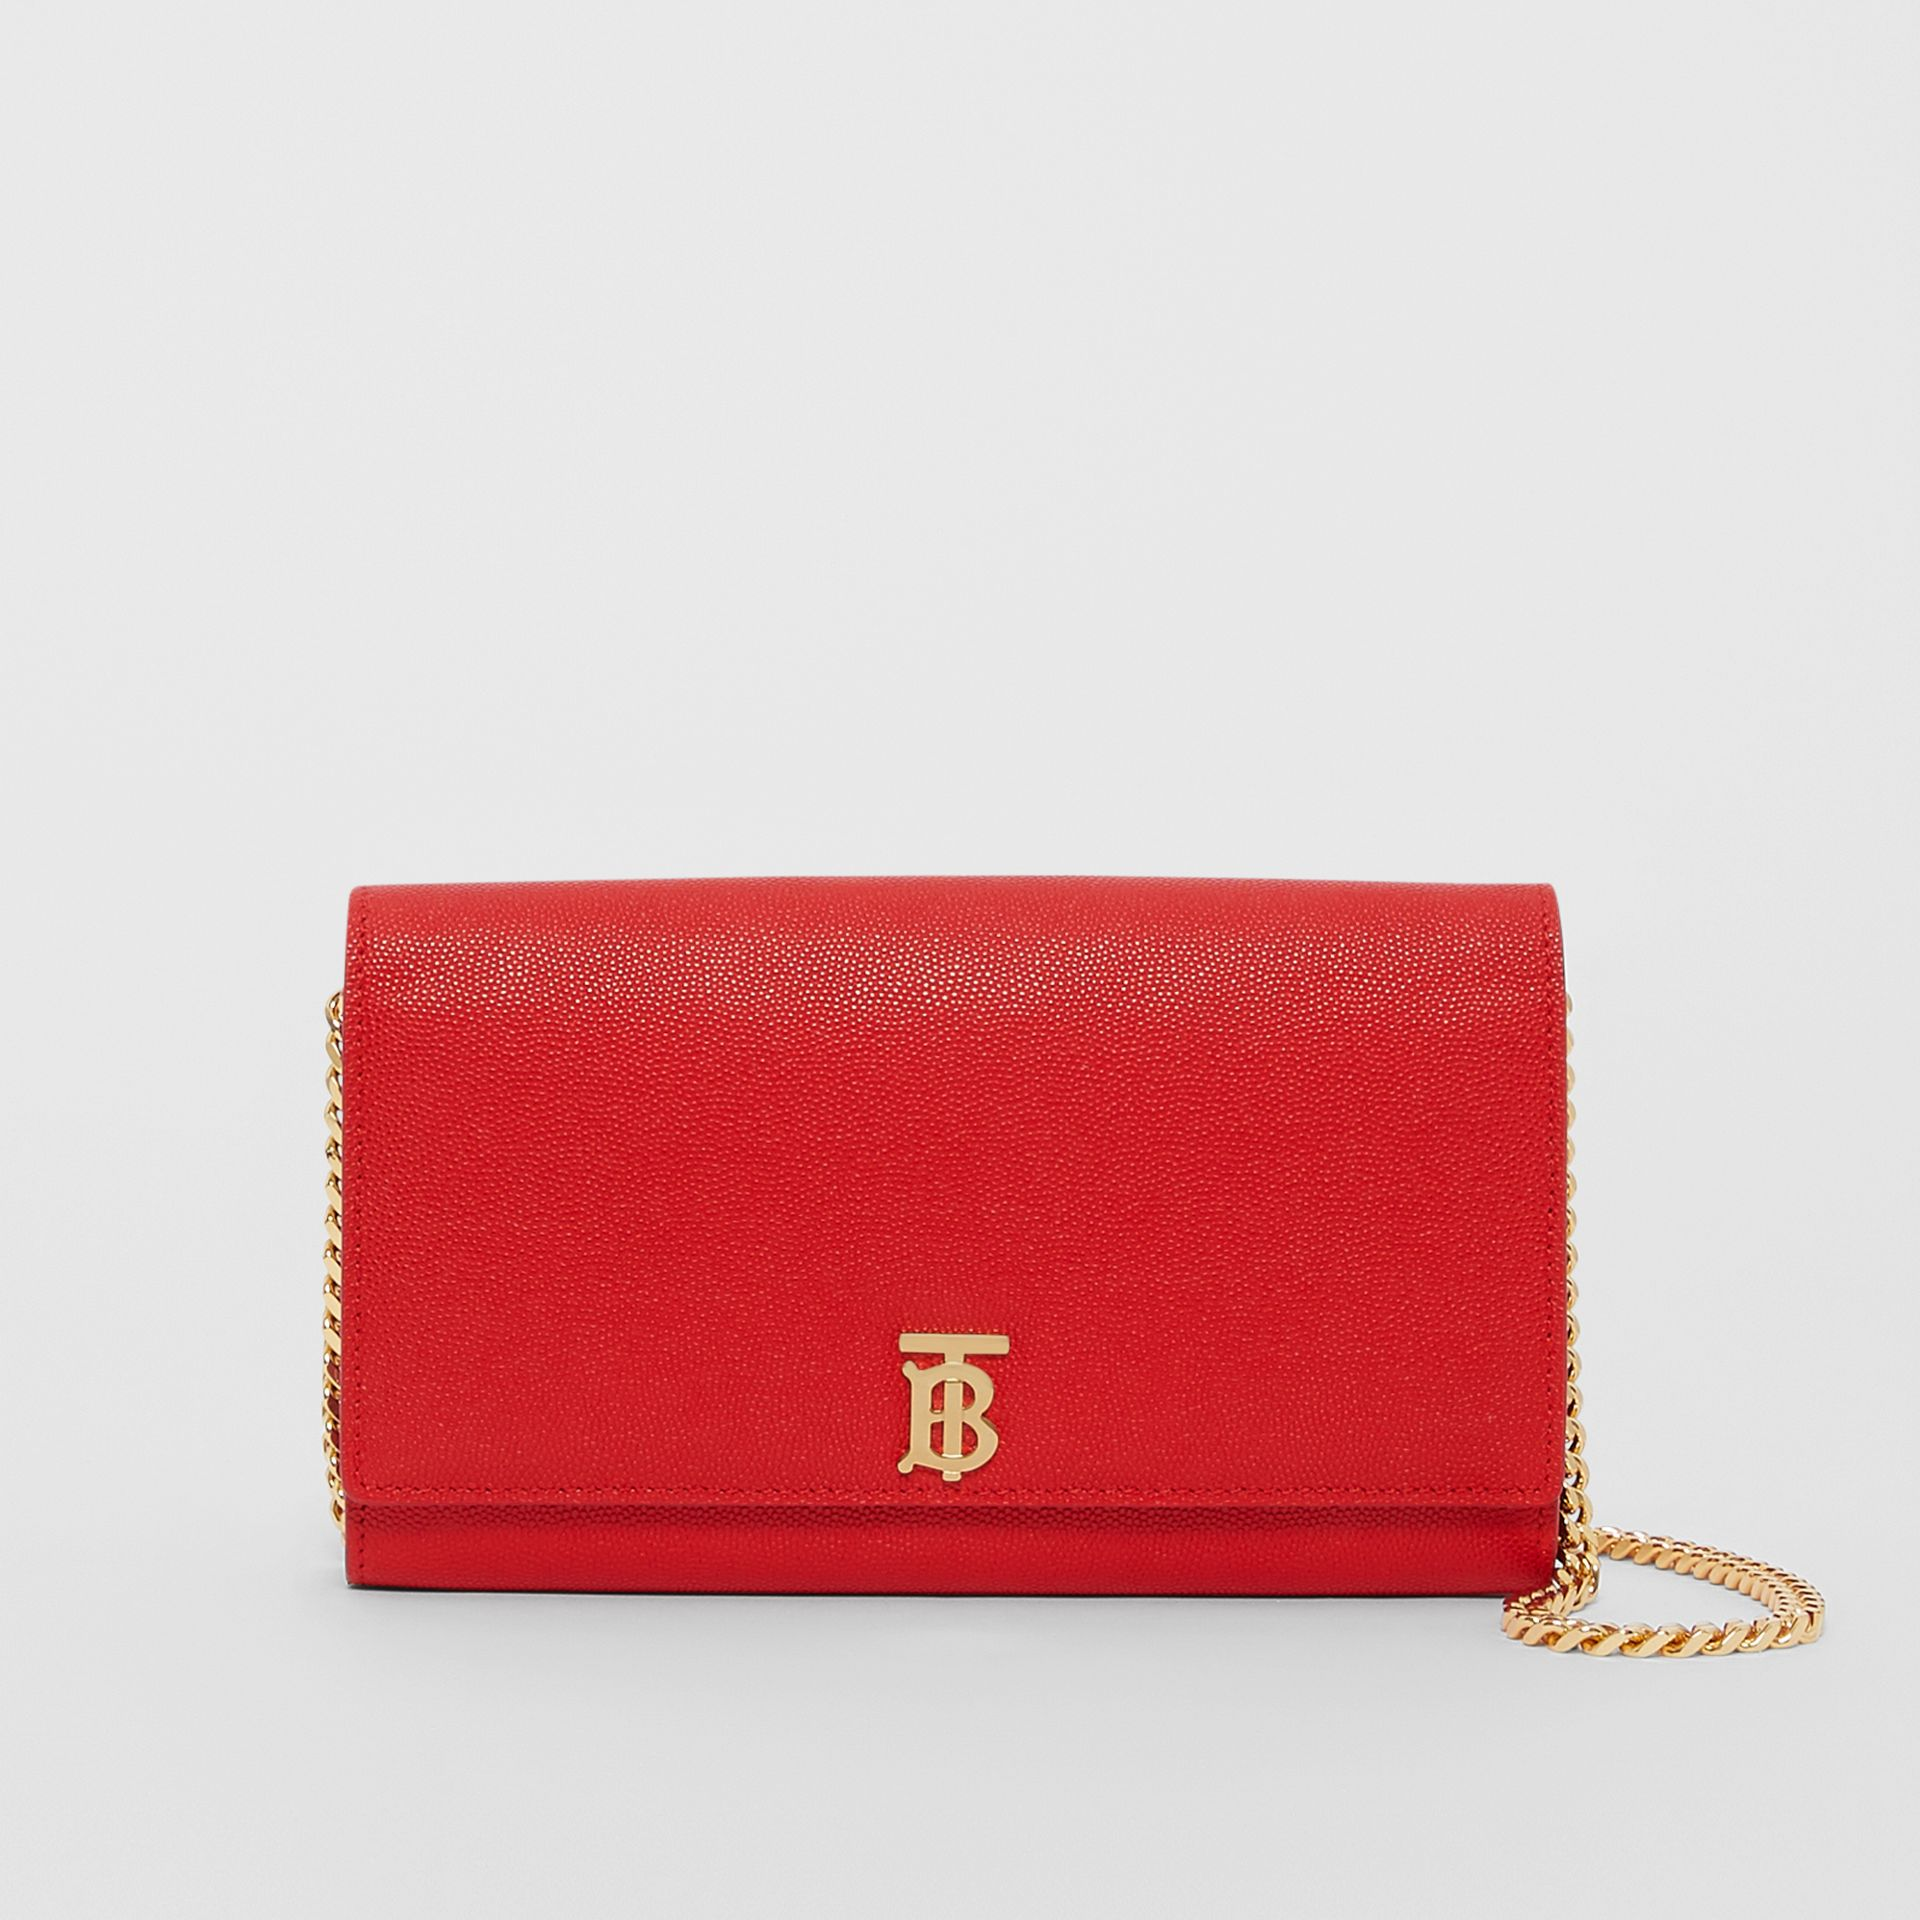 Monogram Motif Leather Wallet with Detachable Strap in Bright Red - Women | Burberry Hong Kong S.A.R - gallery image 0